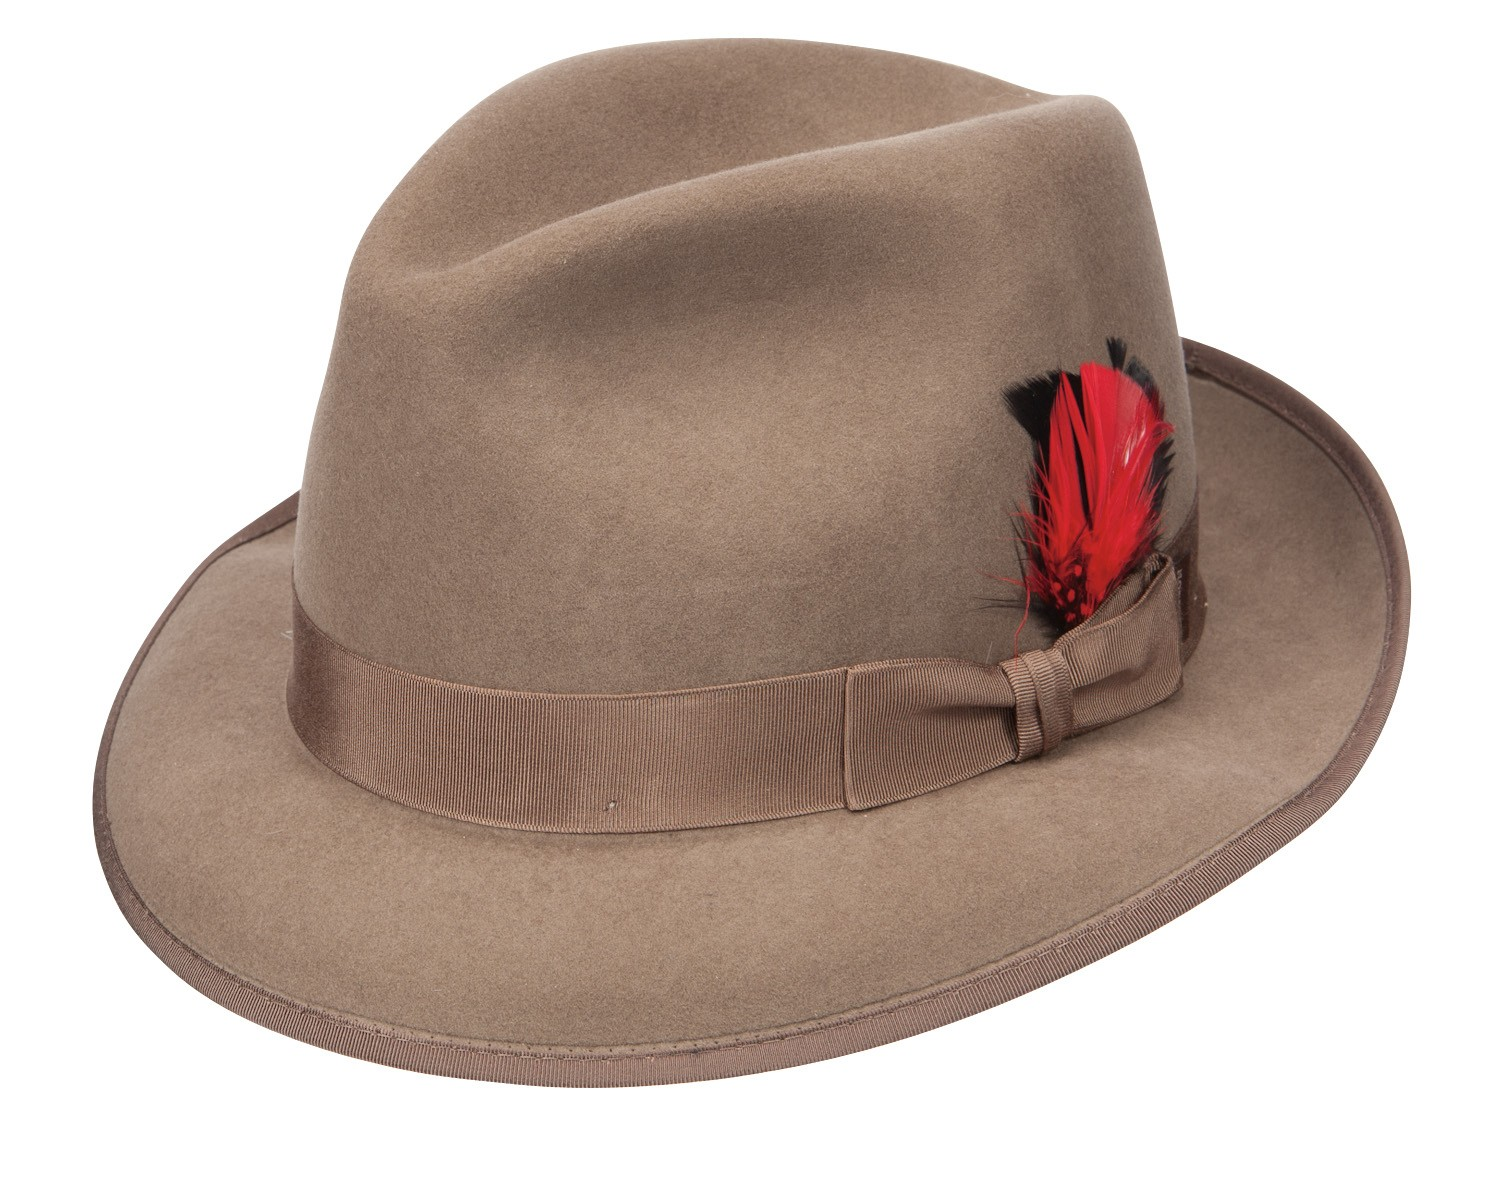 Fedora hats have enjoyed nearly a century of popularity due to their versatile look and ease of wear. Originally a women's hat, fedoras became a staple of men's attire after Prince Edward of Britain began wearing the hat in the s.